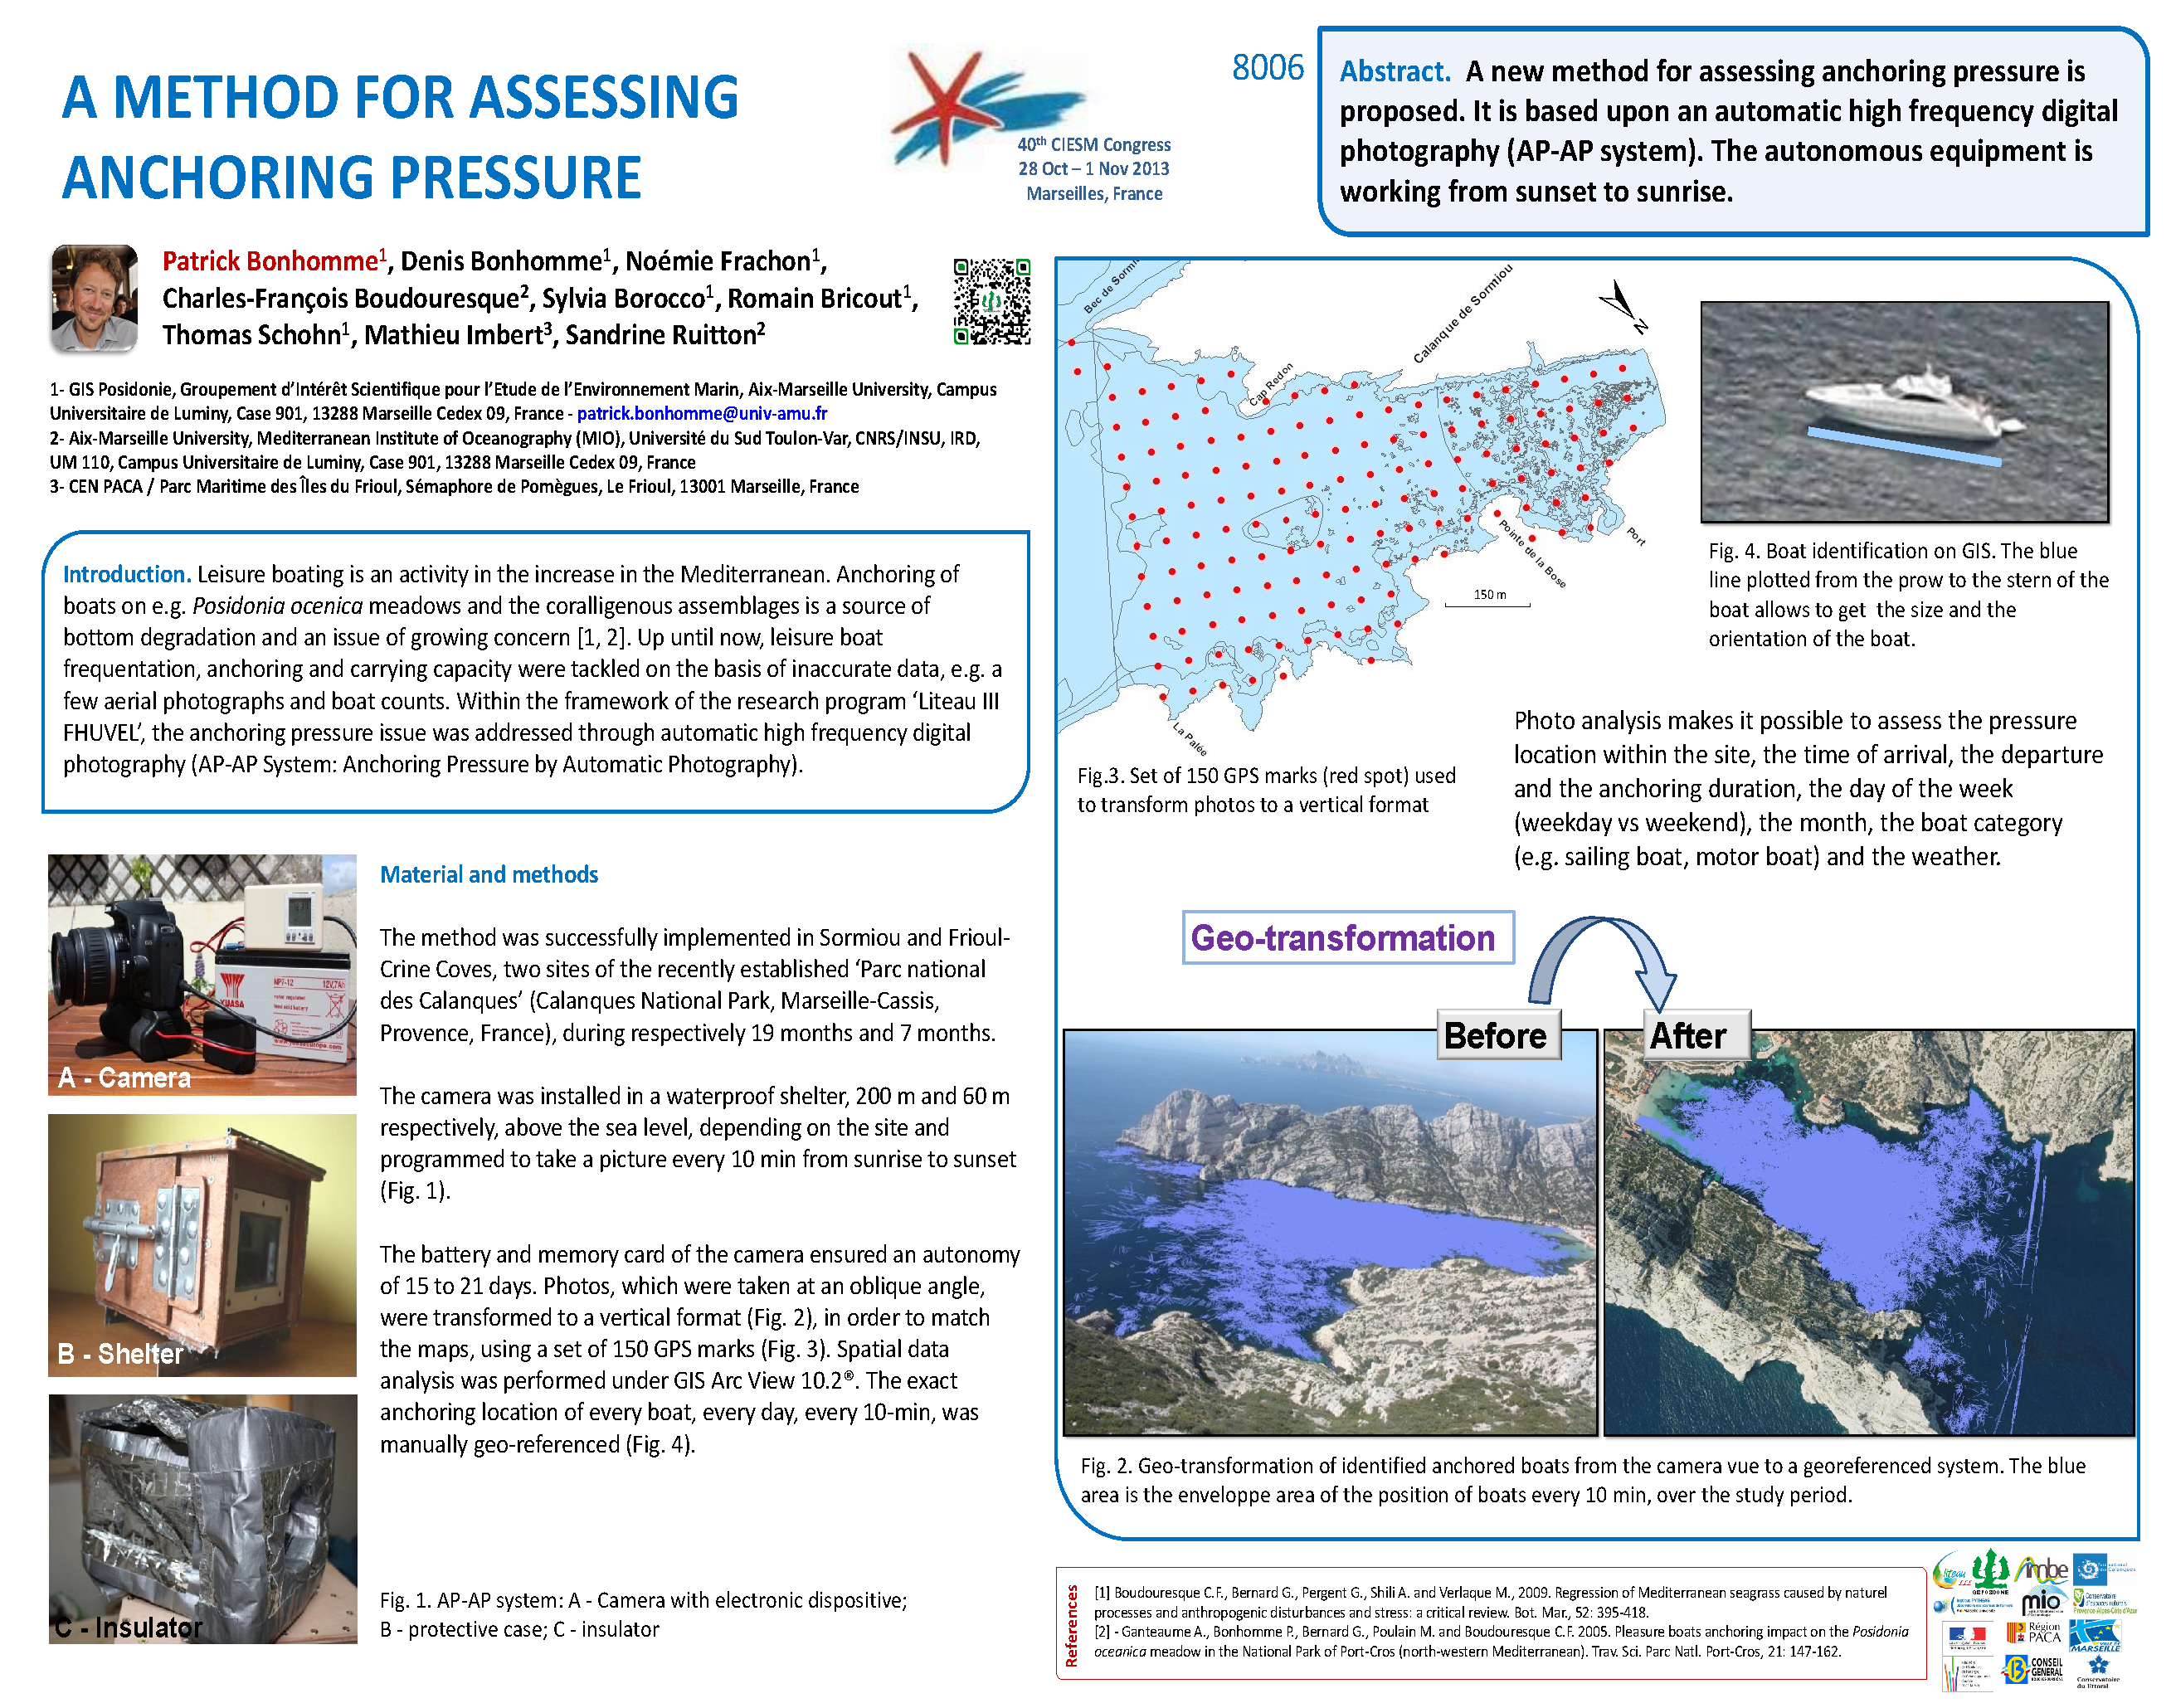 Bonhomme_al2013_A_method_for_assessing_anchoring_Poster